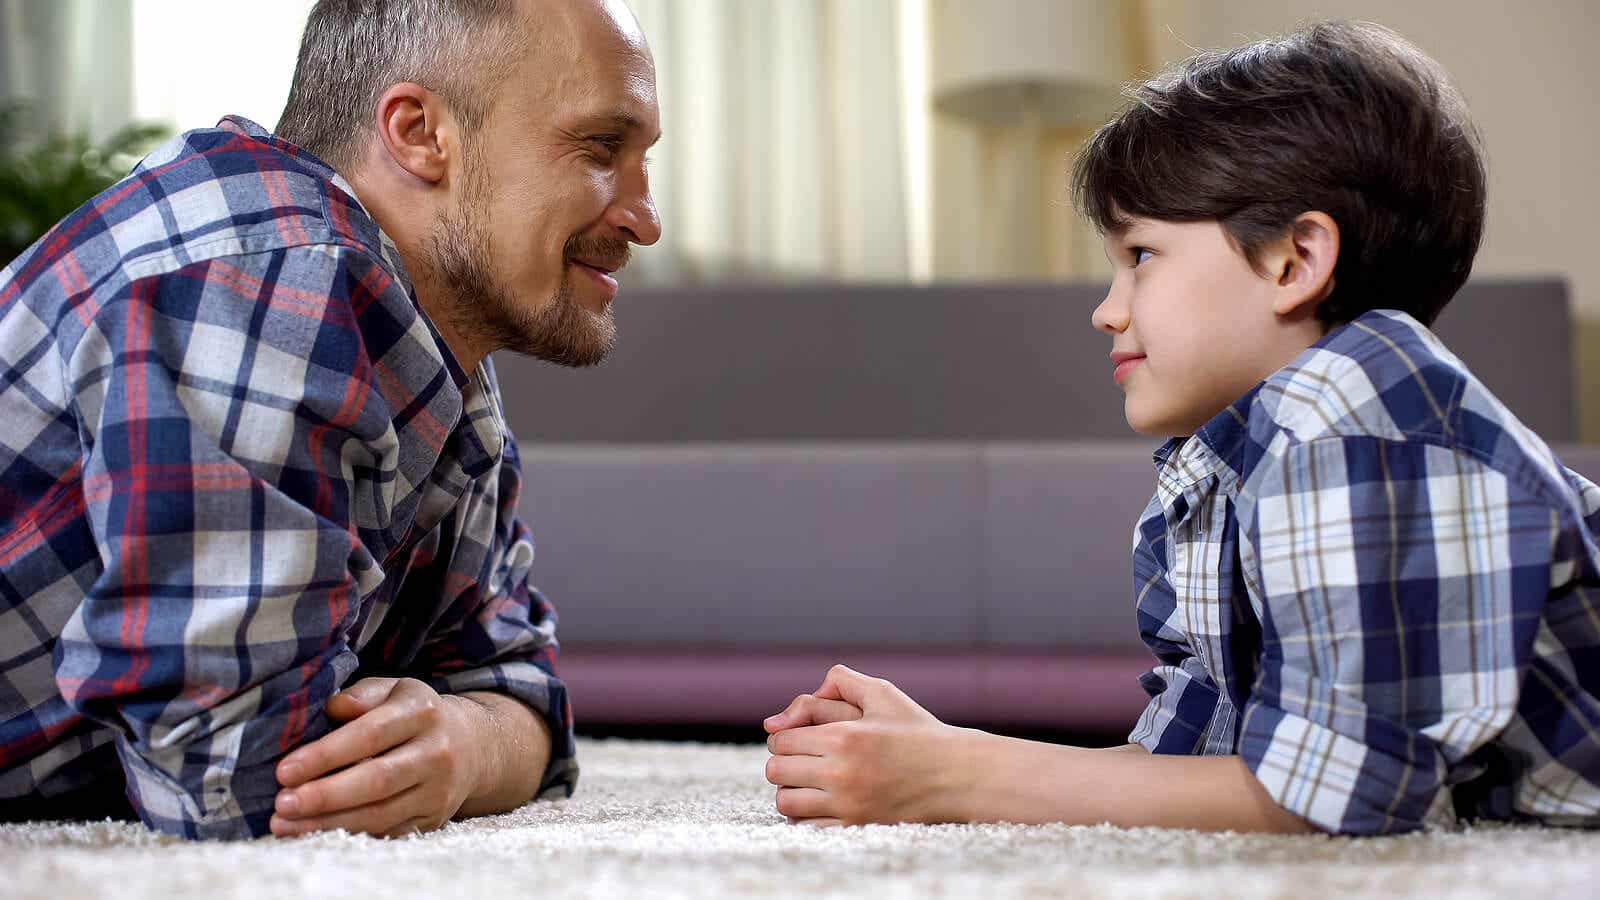 A father and son lying on the floor looking into one another's eyes.